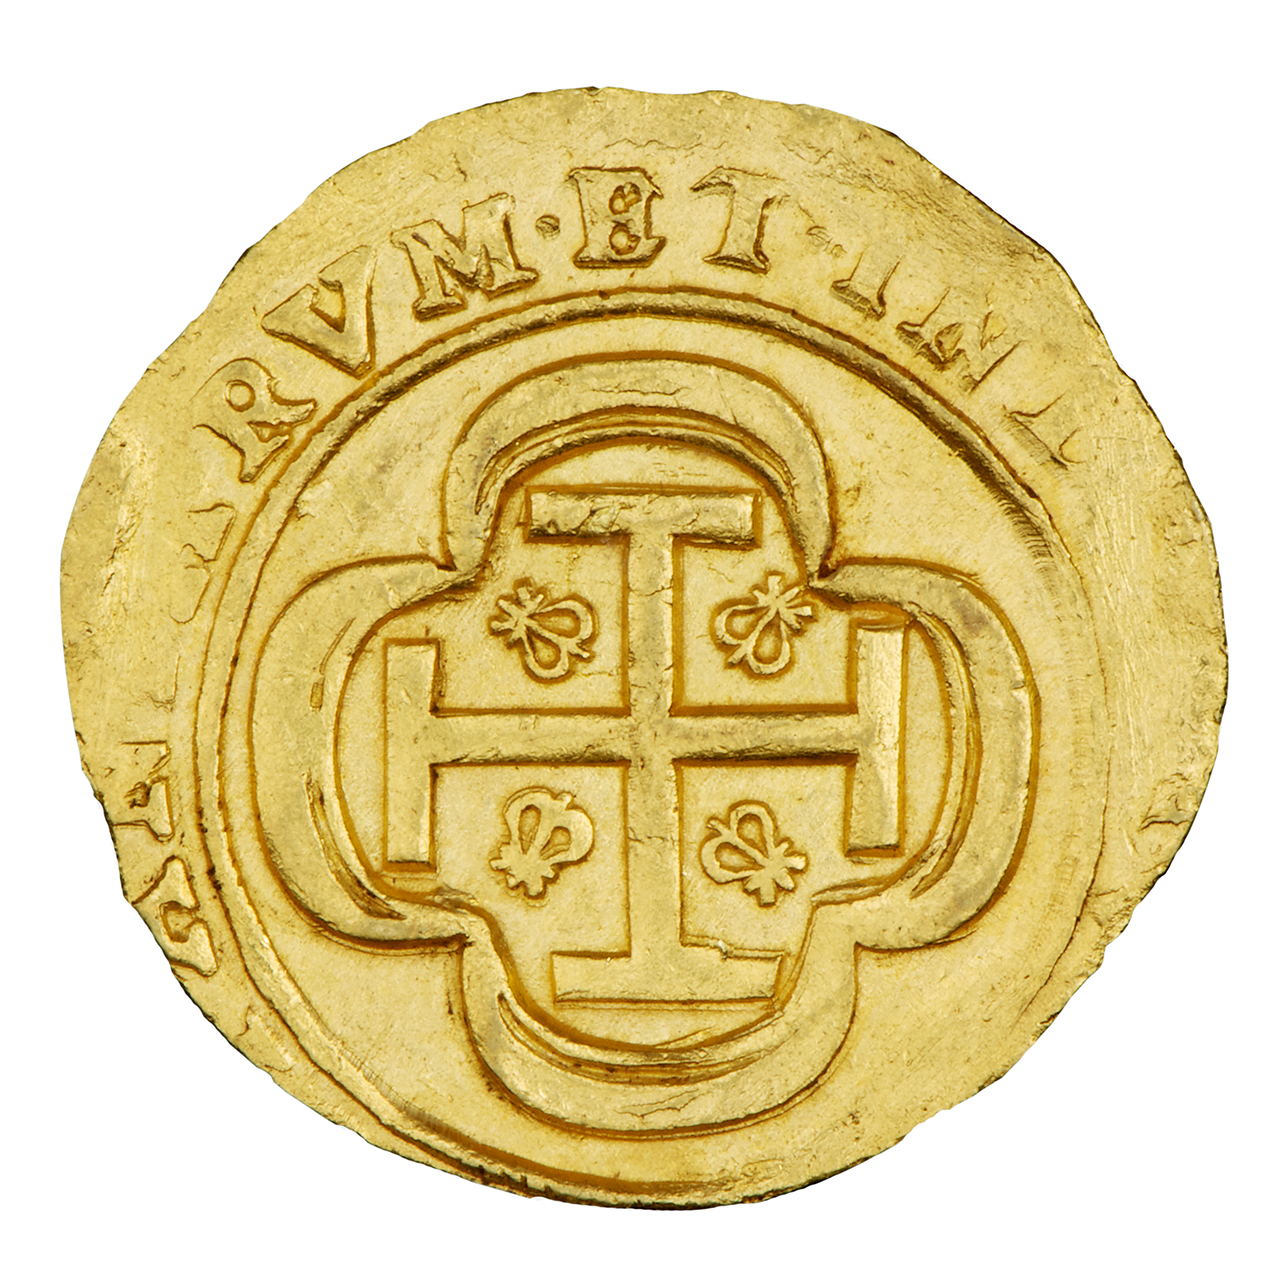 gold coin with a cross embossed on it